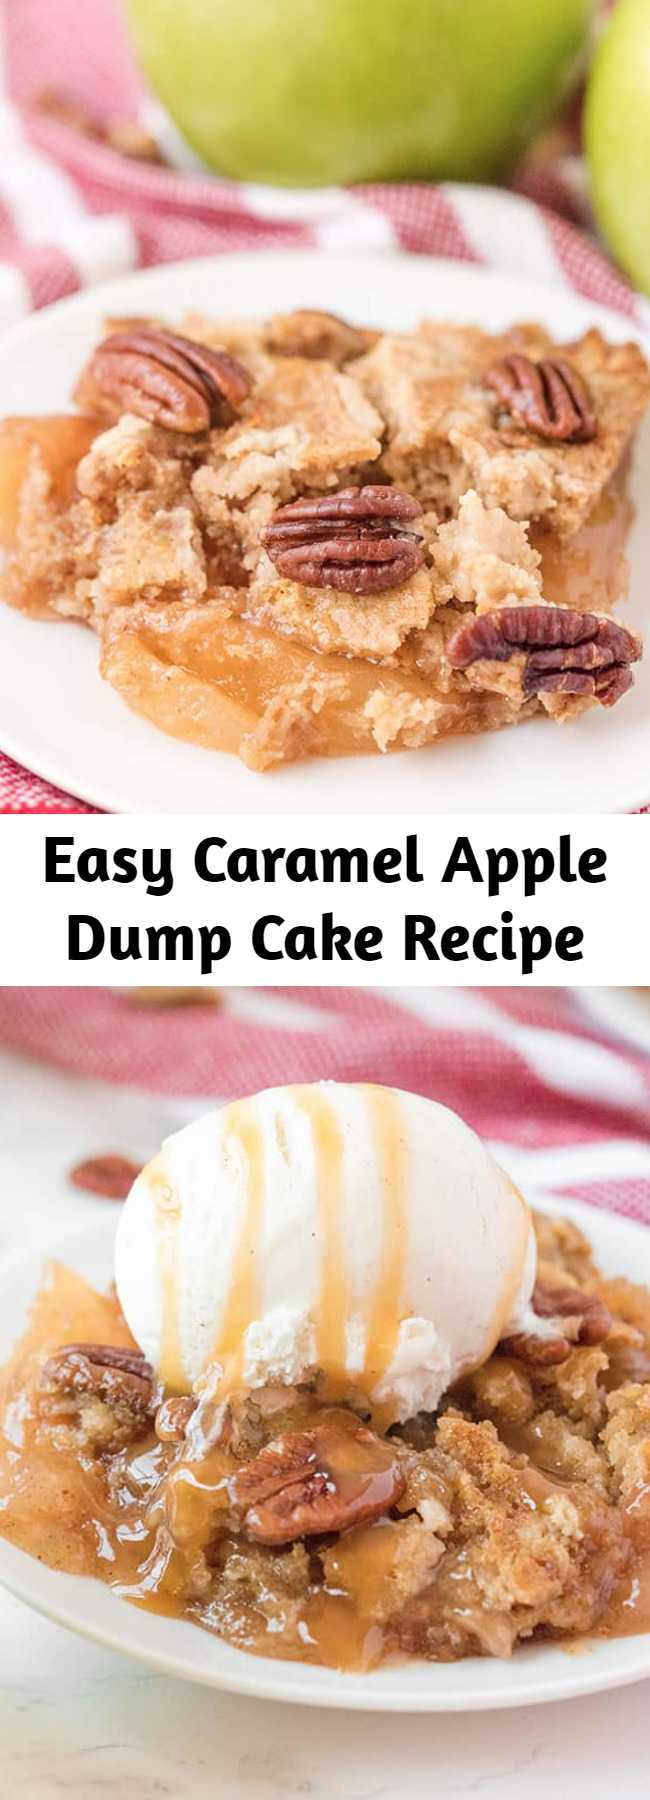 Easy Caramel Apple Dump Cake Recipe - SA simple recipe for Caramel Apple Dump cake made with butter pecan cake mix and apple pie filling! A tender and moist spiced cake with tender apples throughout topped with nuts and a caramel drizzle that is the perfect amount of sweetness. Add a scoop of ice cream or dollop of whipped cream and you have a straightforward dessert is crowd worthy. #dumpcake #caramel #apples